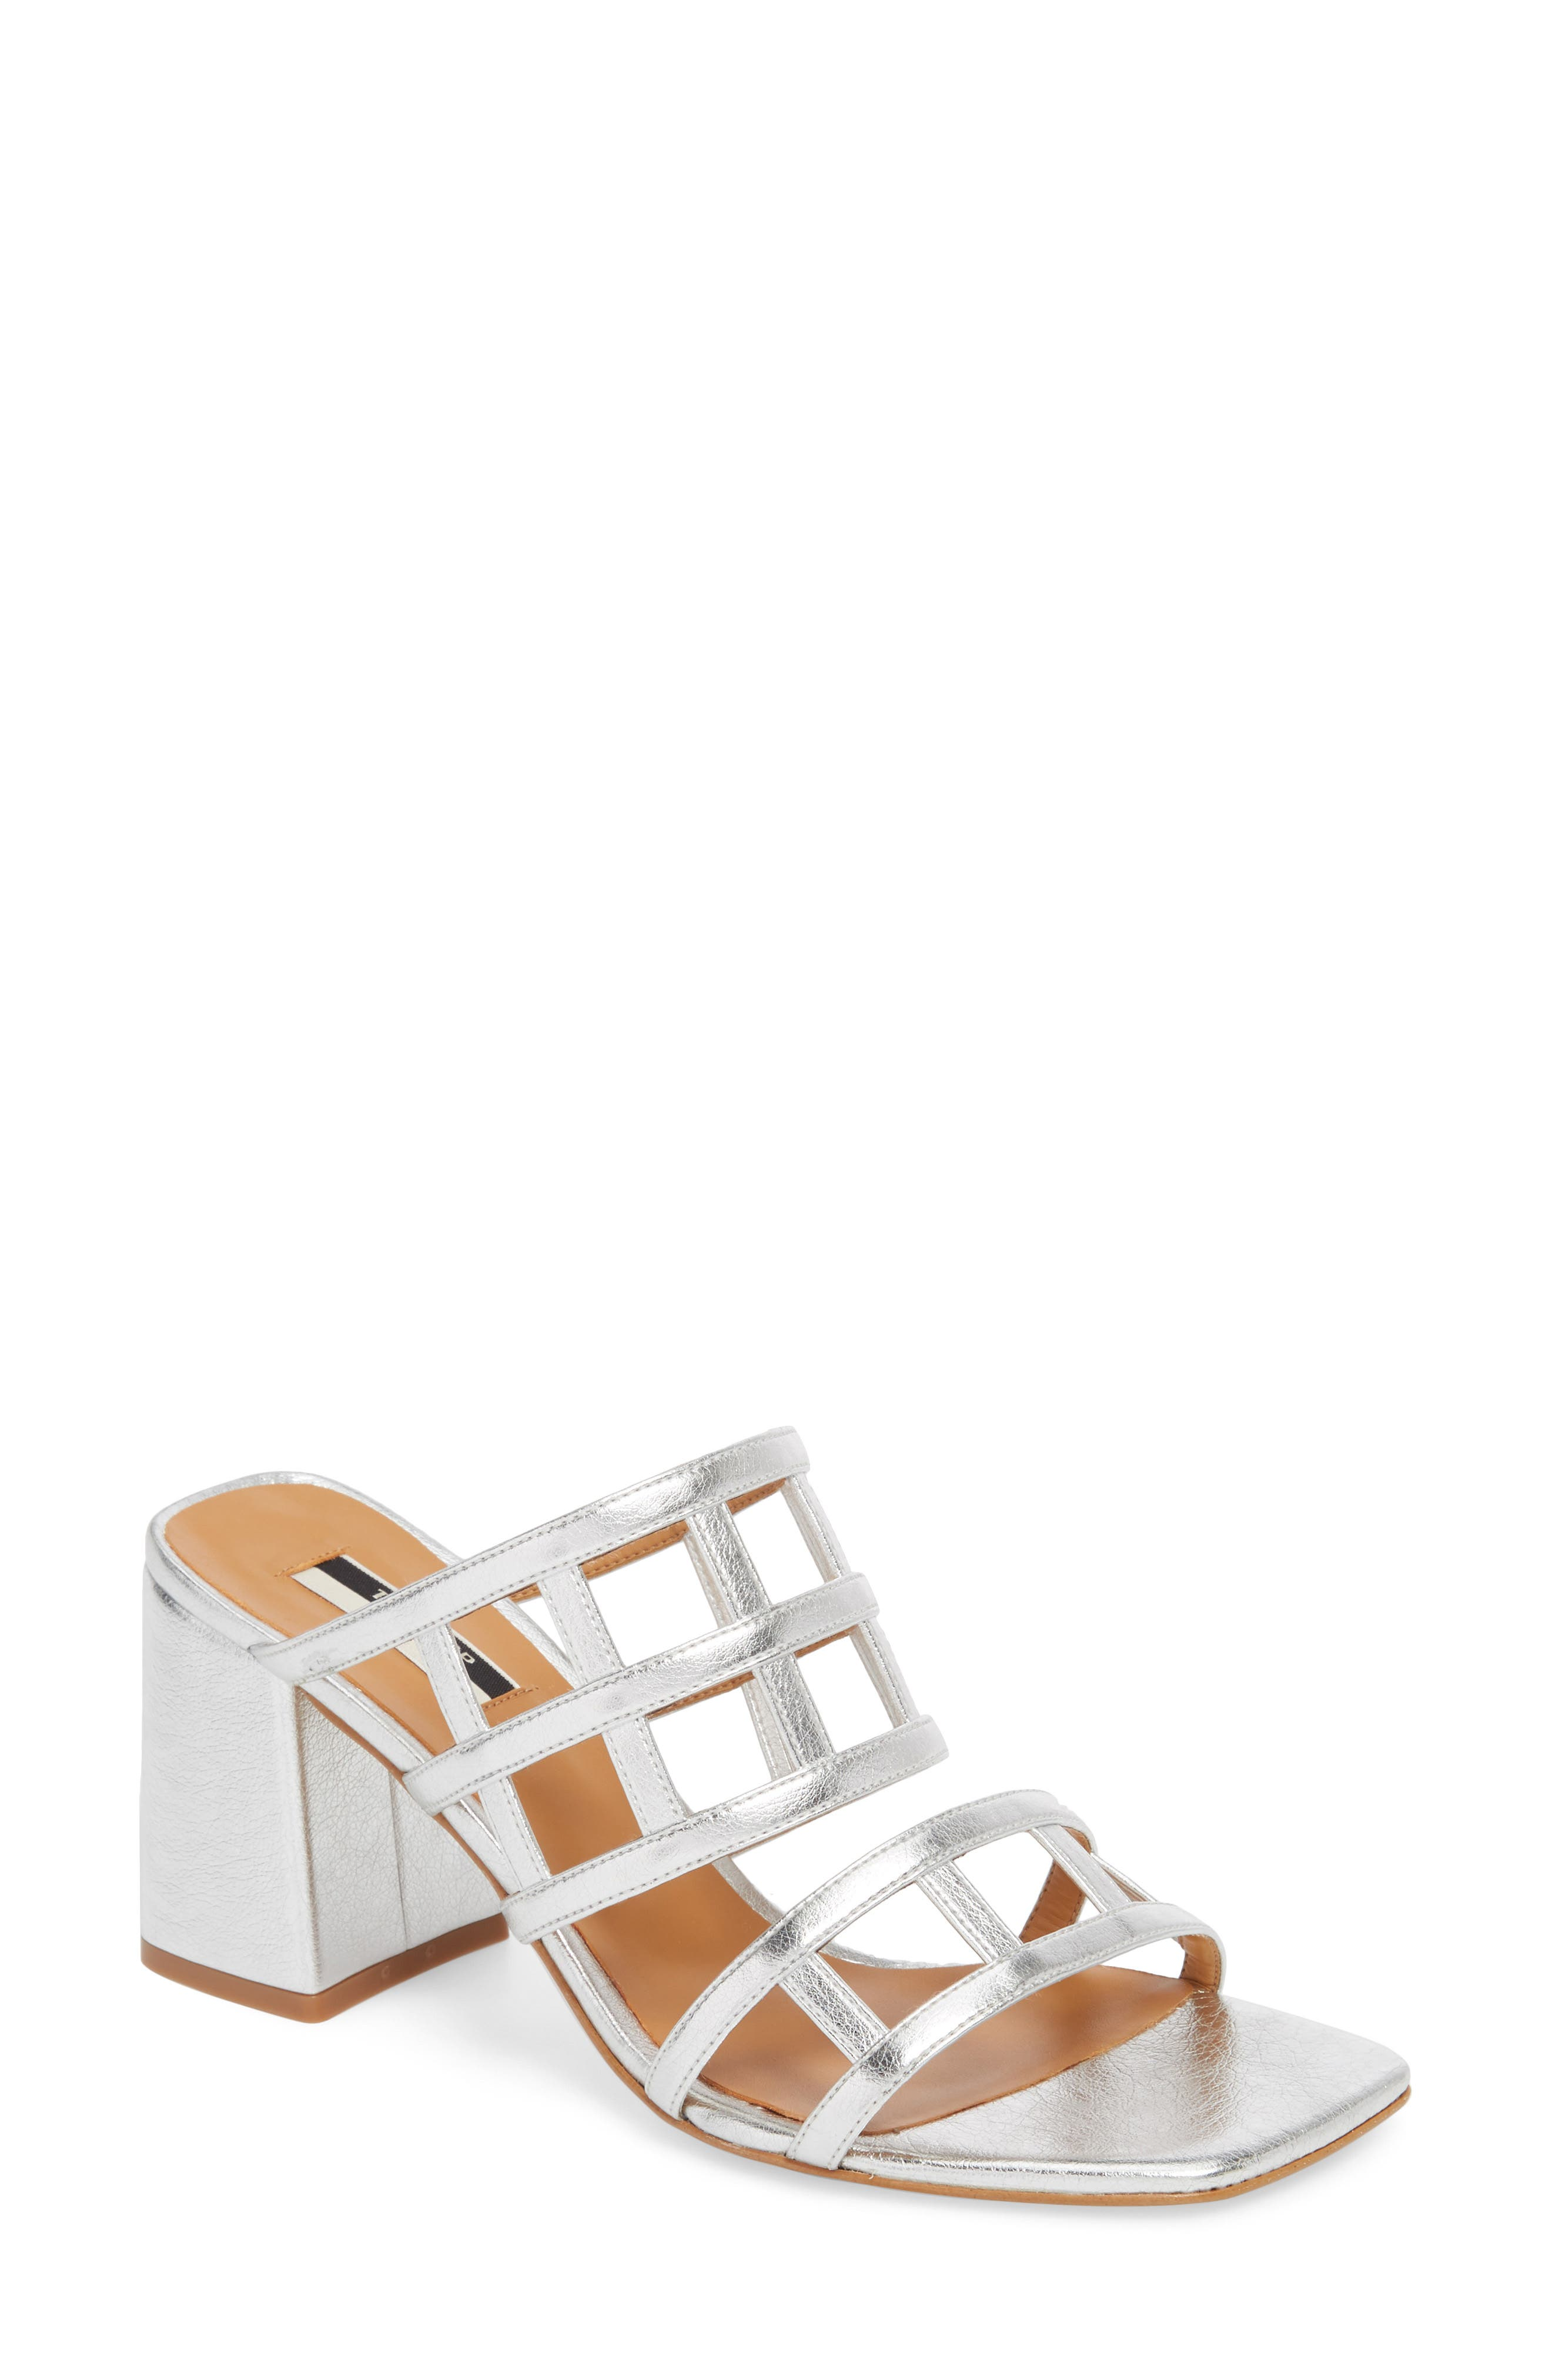 Eid Night Caged Slide Sandal,                             Main thumbnail 1, color,                             SILVER